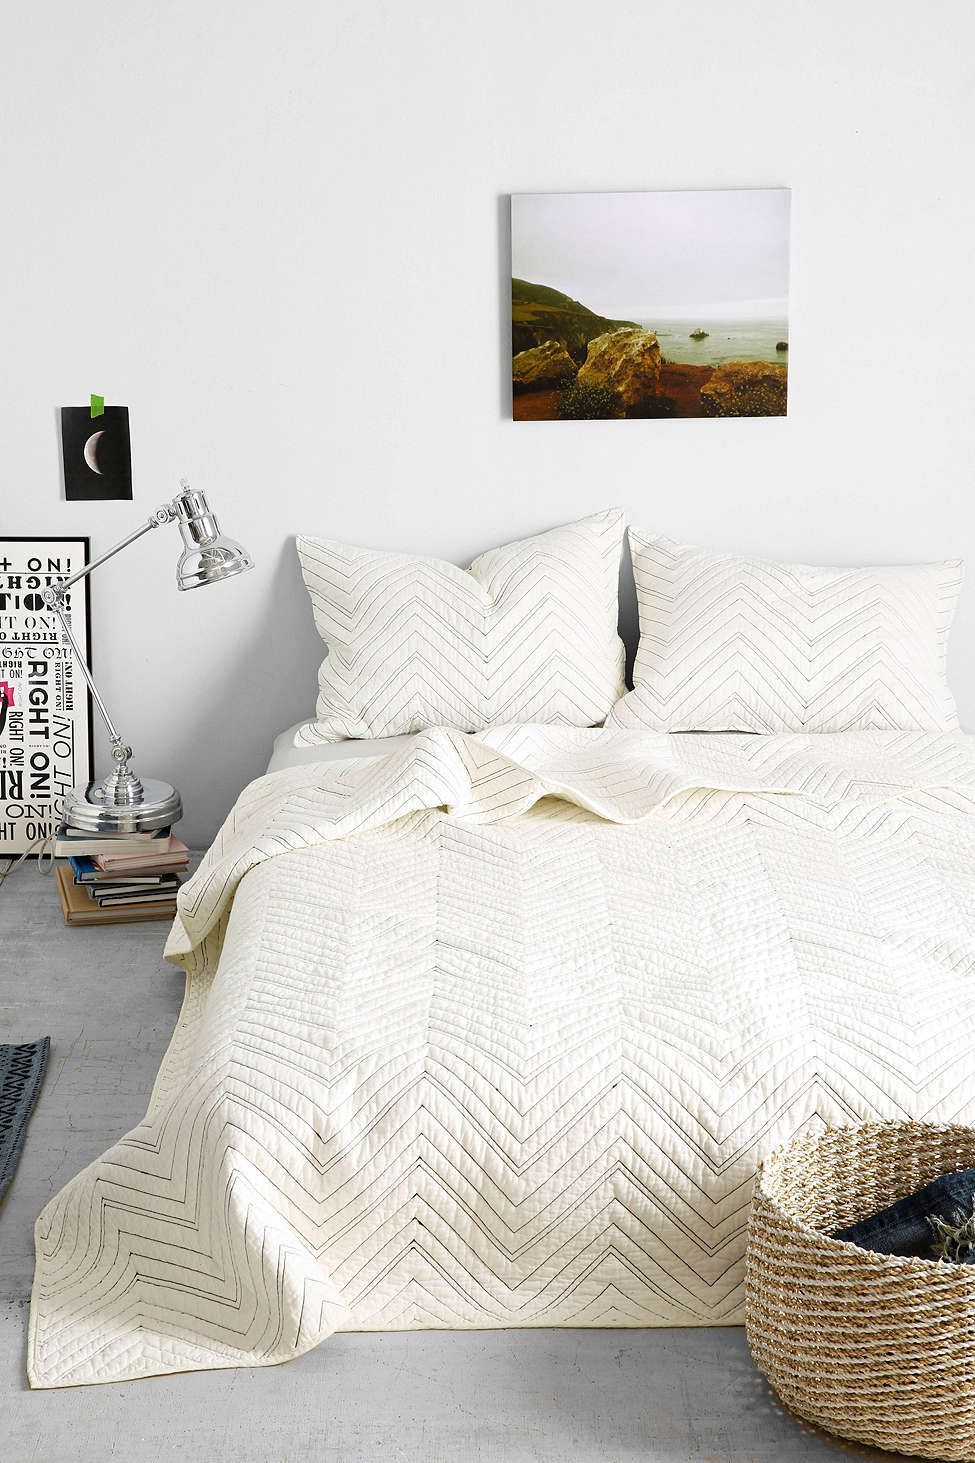 4040 Locust Chevron Quilt - Urban Outfitters, I love the simplicity of this and how color can be added with pillows or blanket, especially stuff of different textures.